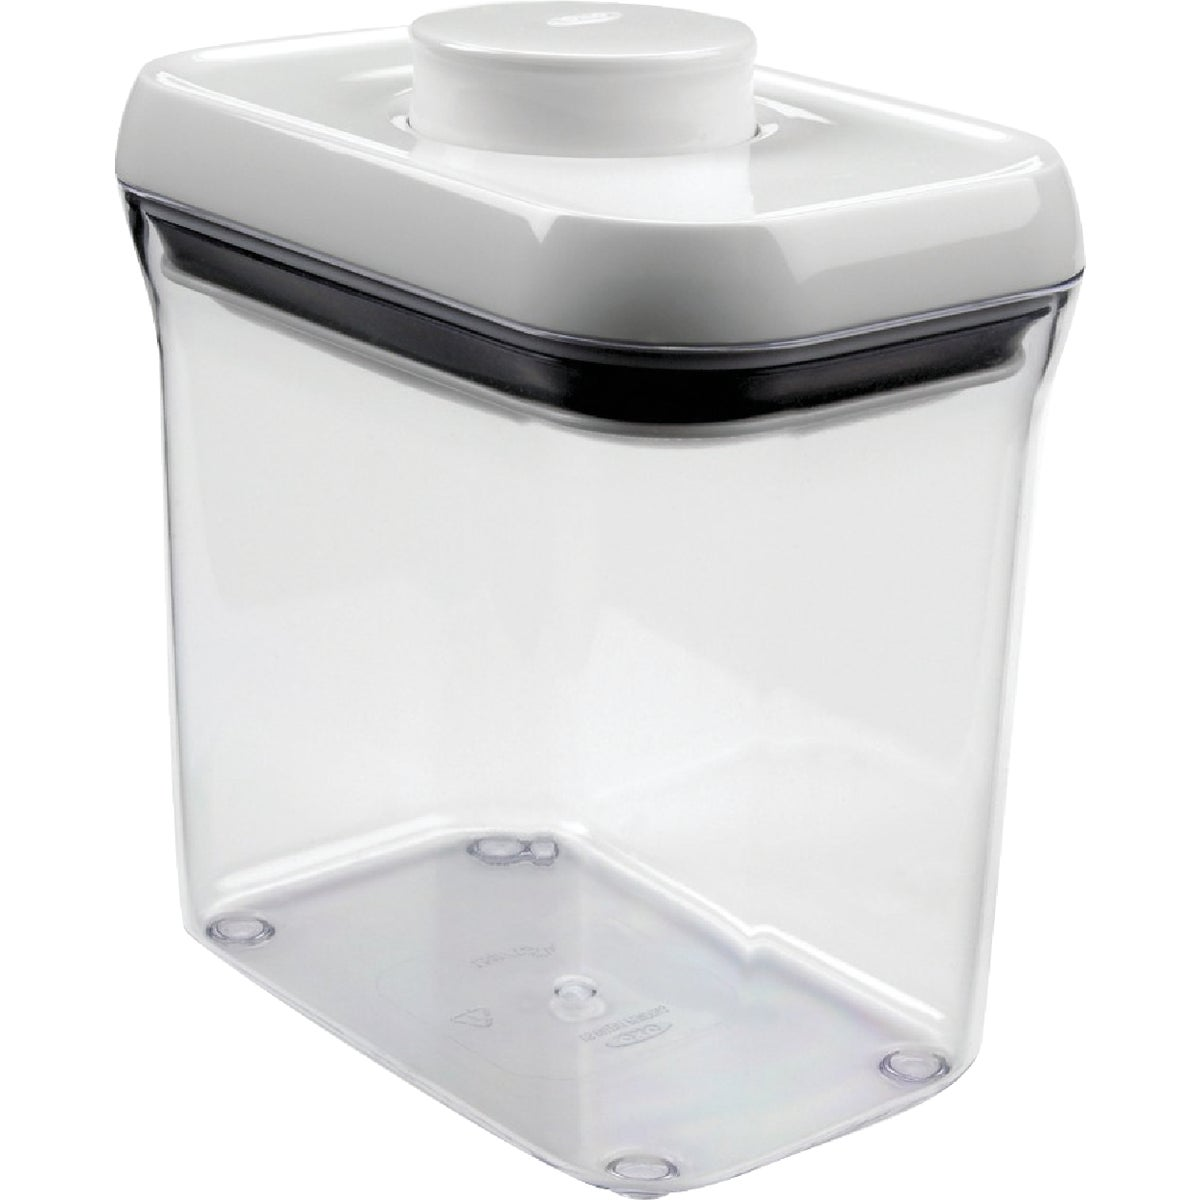 1.5QT RECT POP CONTAINER - 1071400 by Oxo International